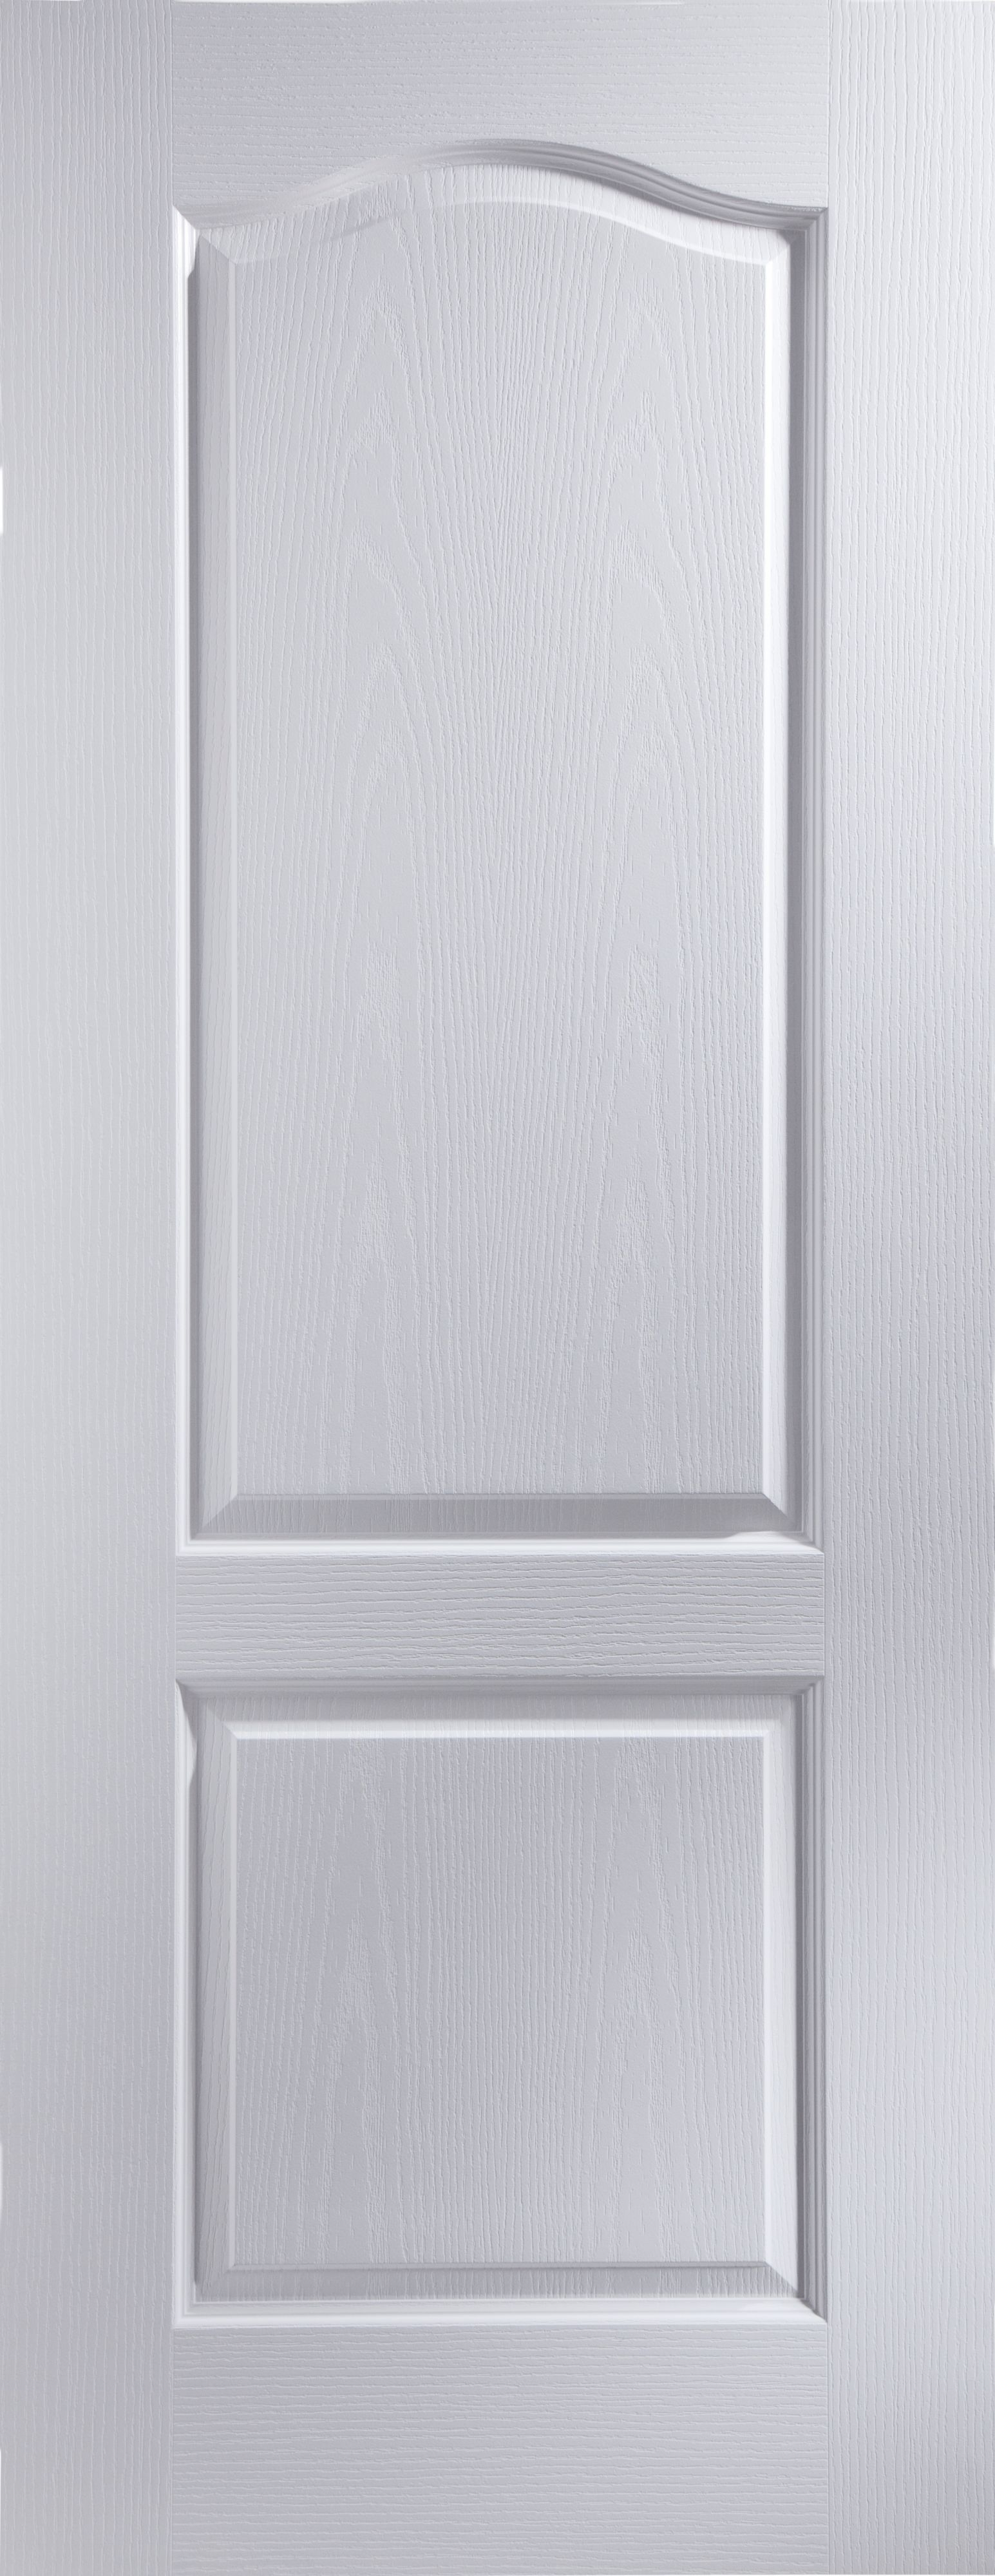 2 panel arched pre painted white woodgrain internal - Pre painted white interior doors ...